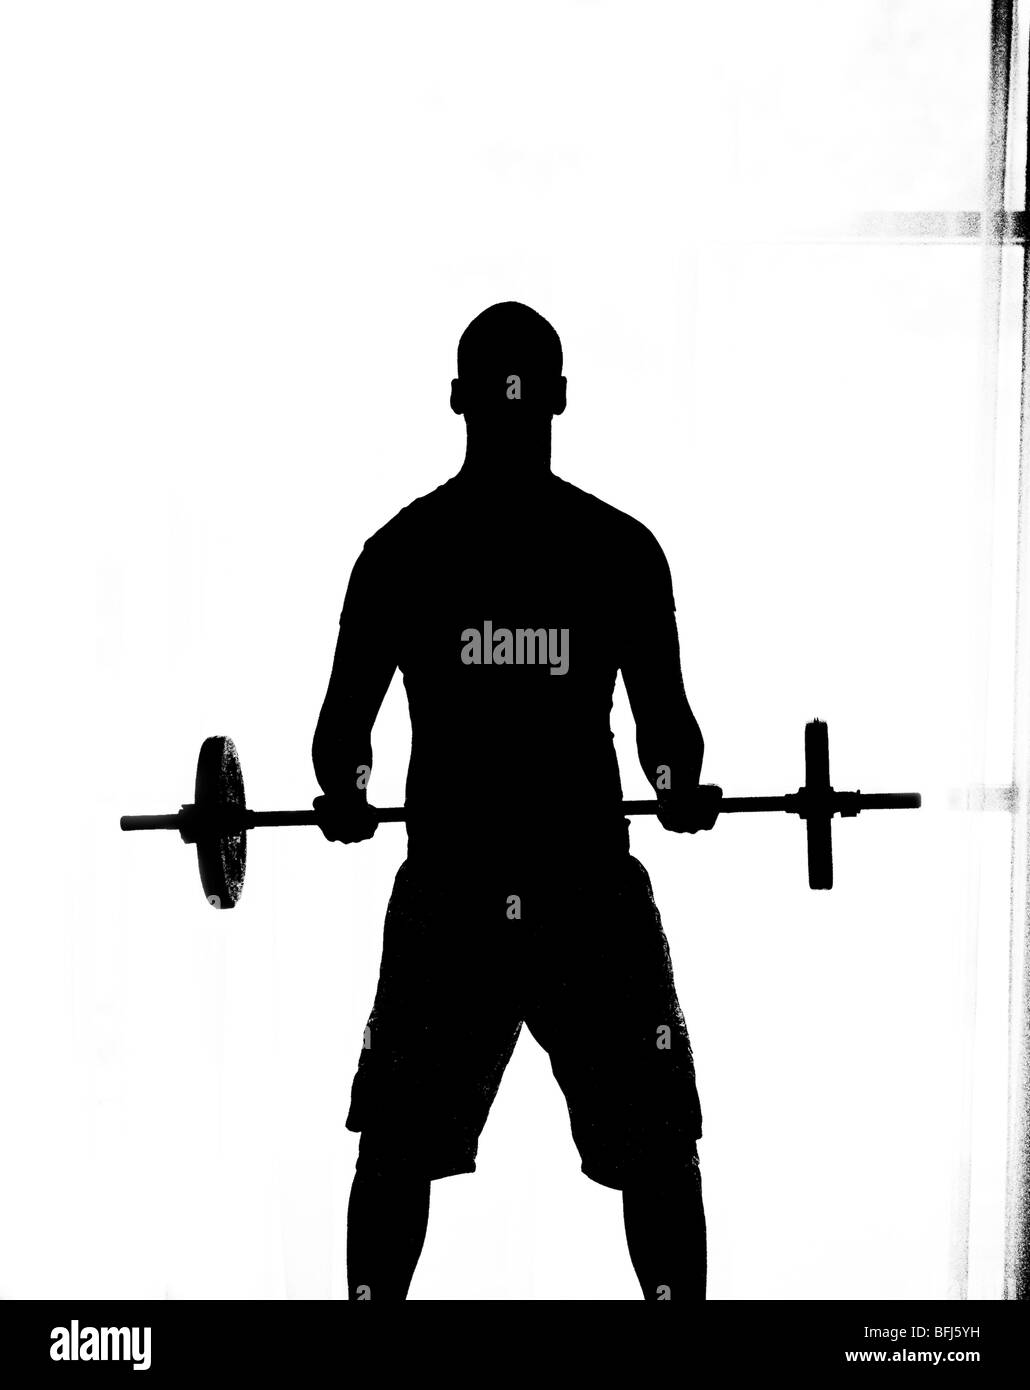 the silhouette of a man weight lifting sweden